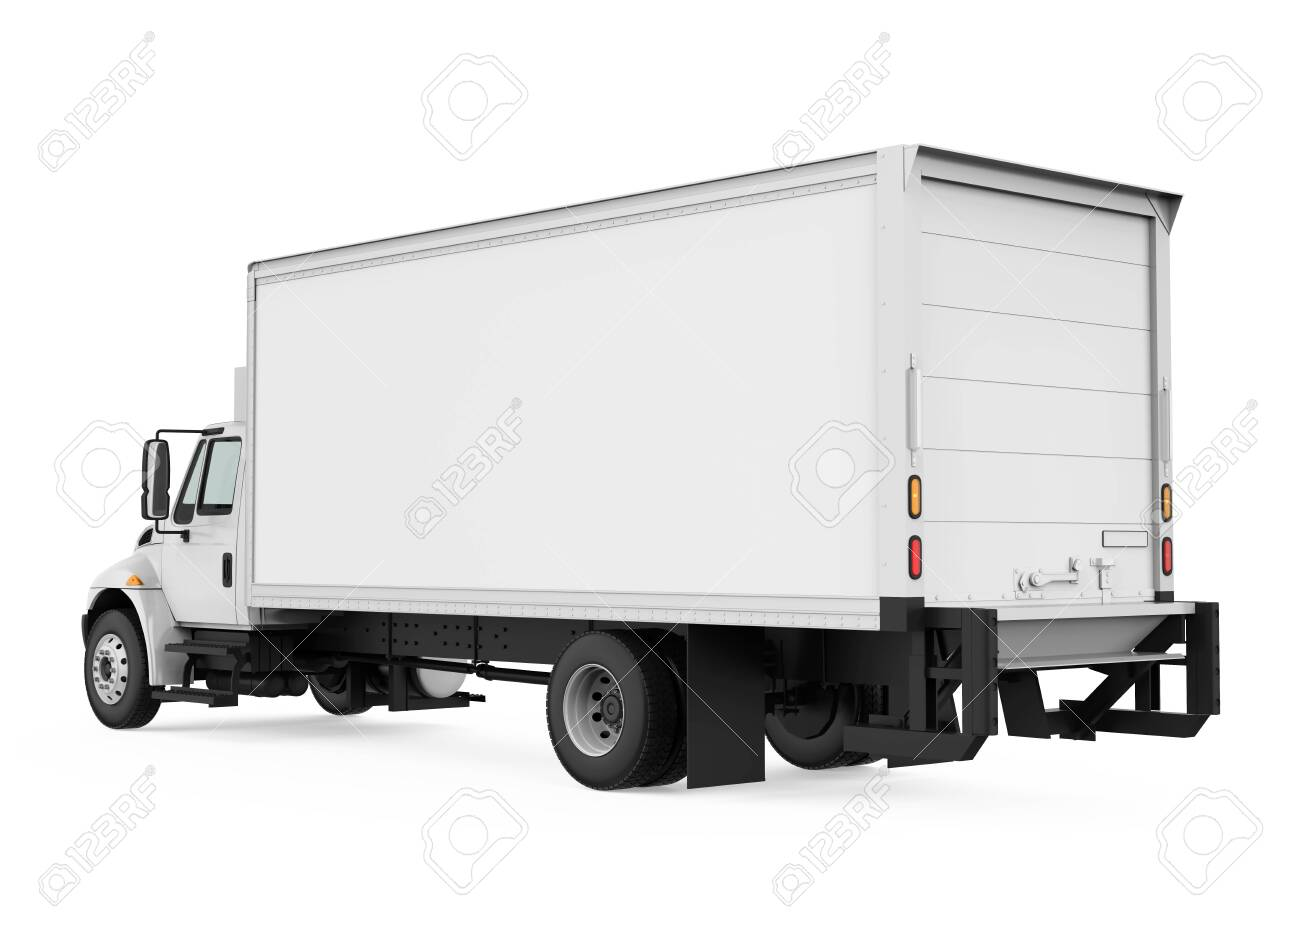 Refrigerated Truck Isolated - 128941950